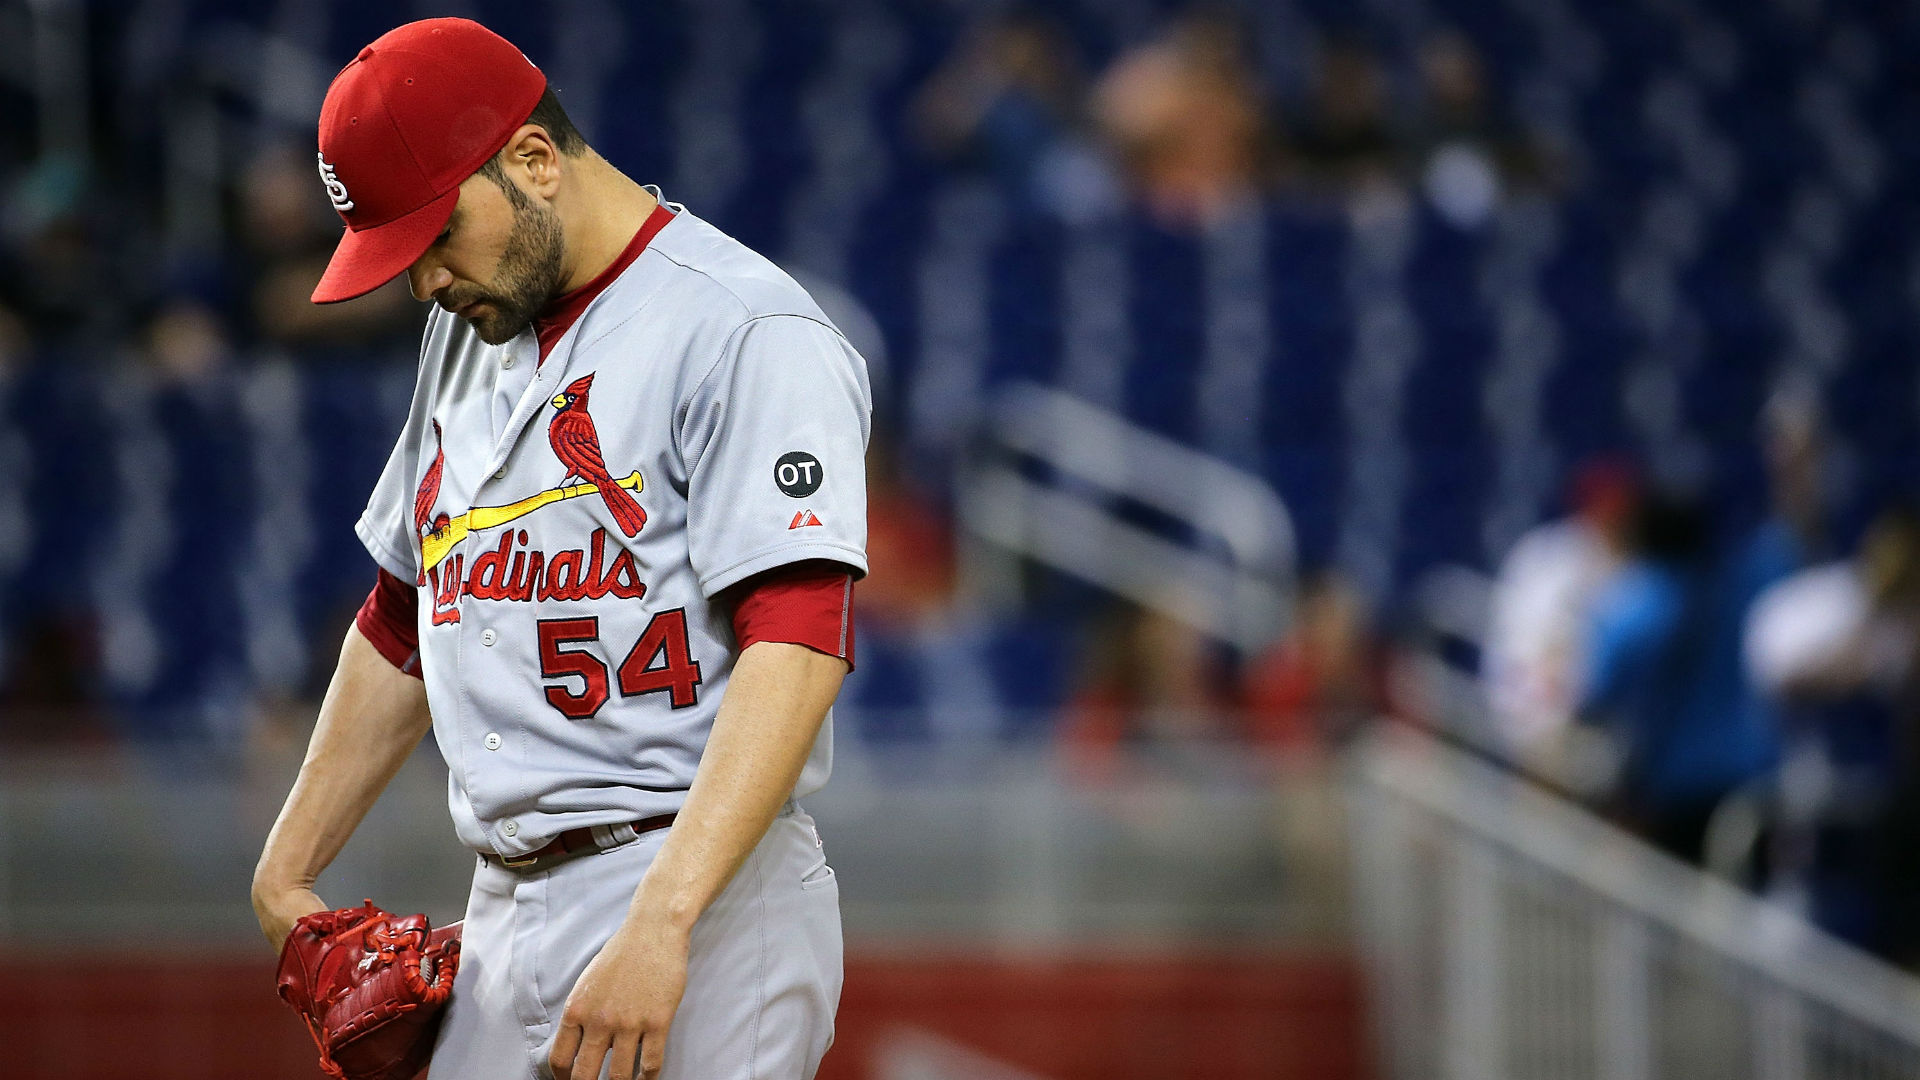 Jaime Garcia back to disabled list, this time with groin strain